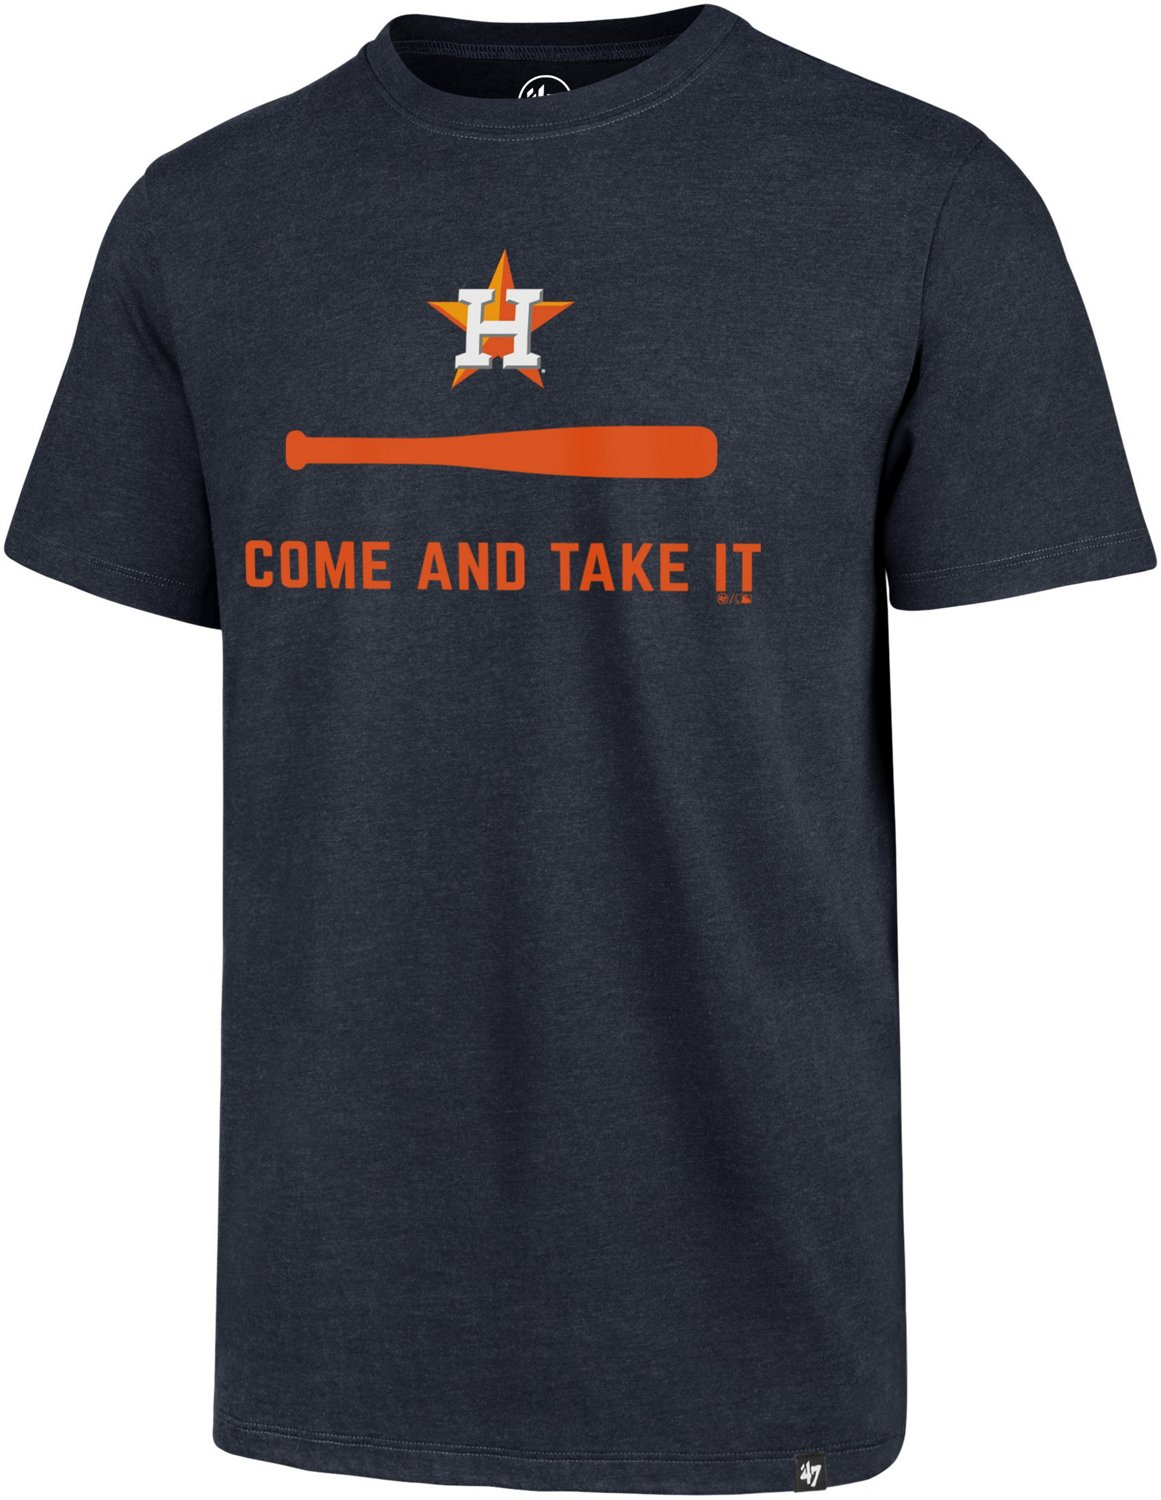 188daeaf '47 Men's Houston Astros Come and Take It T-Shirt | Academy